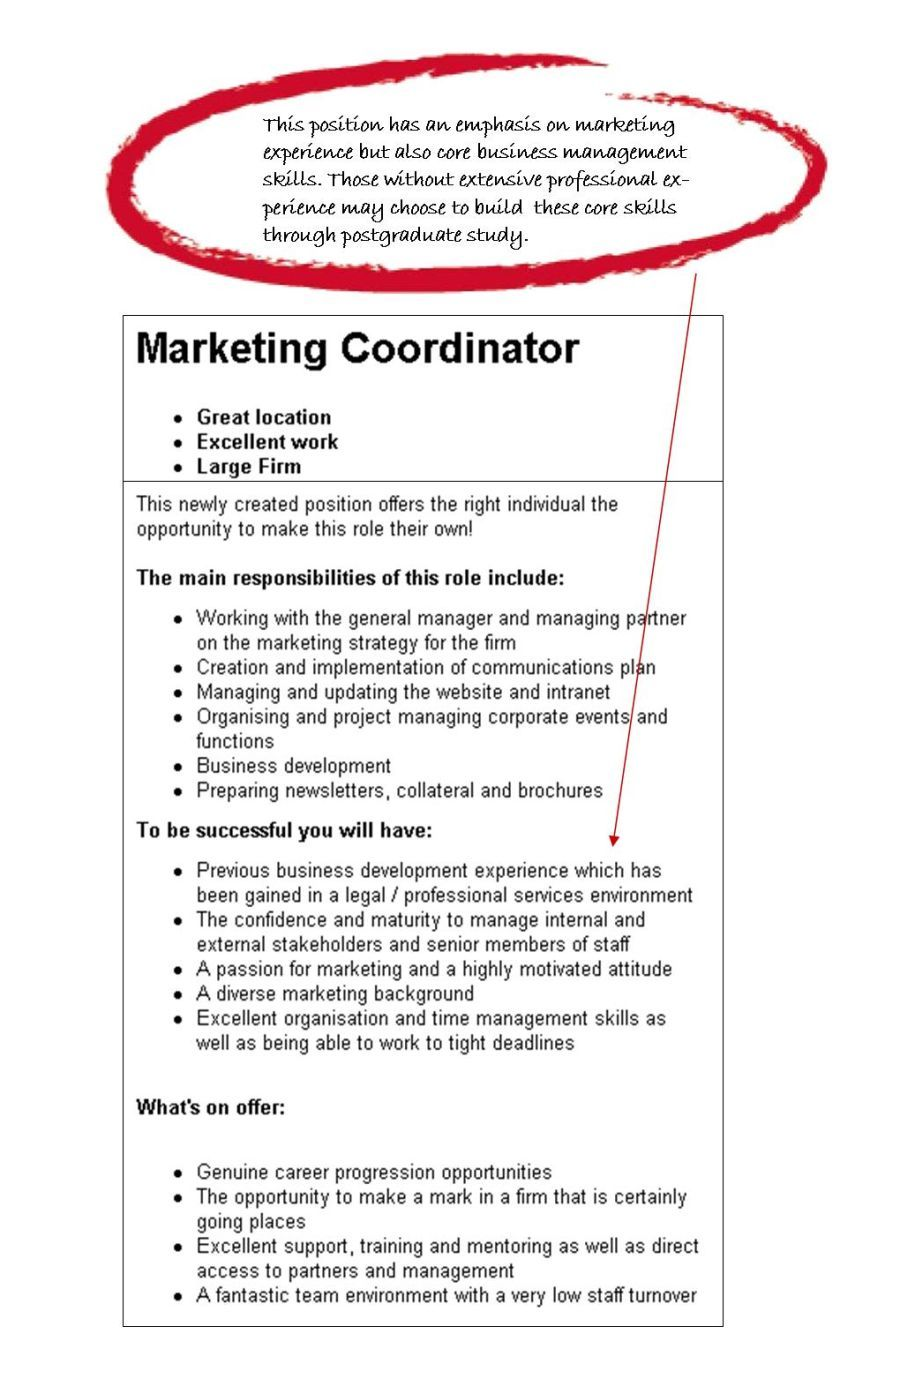 Examples Of Resume Objectives Objectives For Resume  Resume  Pinterest  Resume Objective And